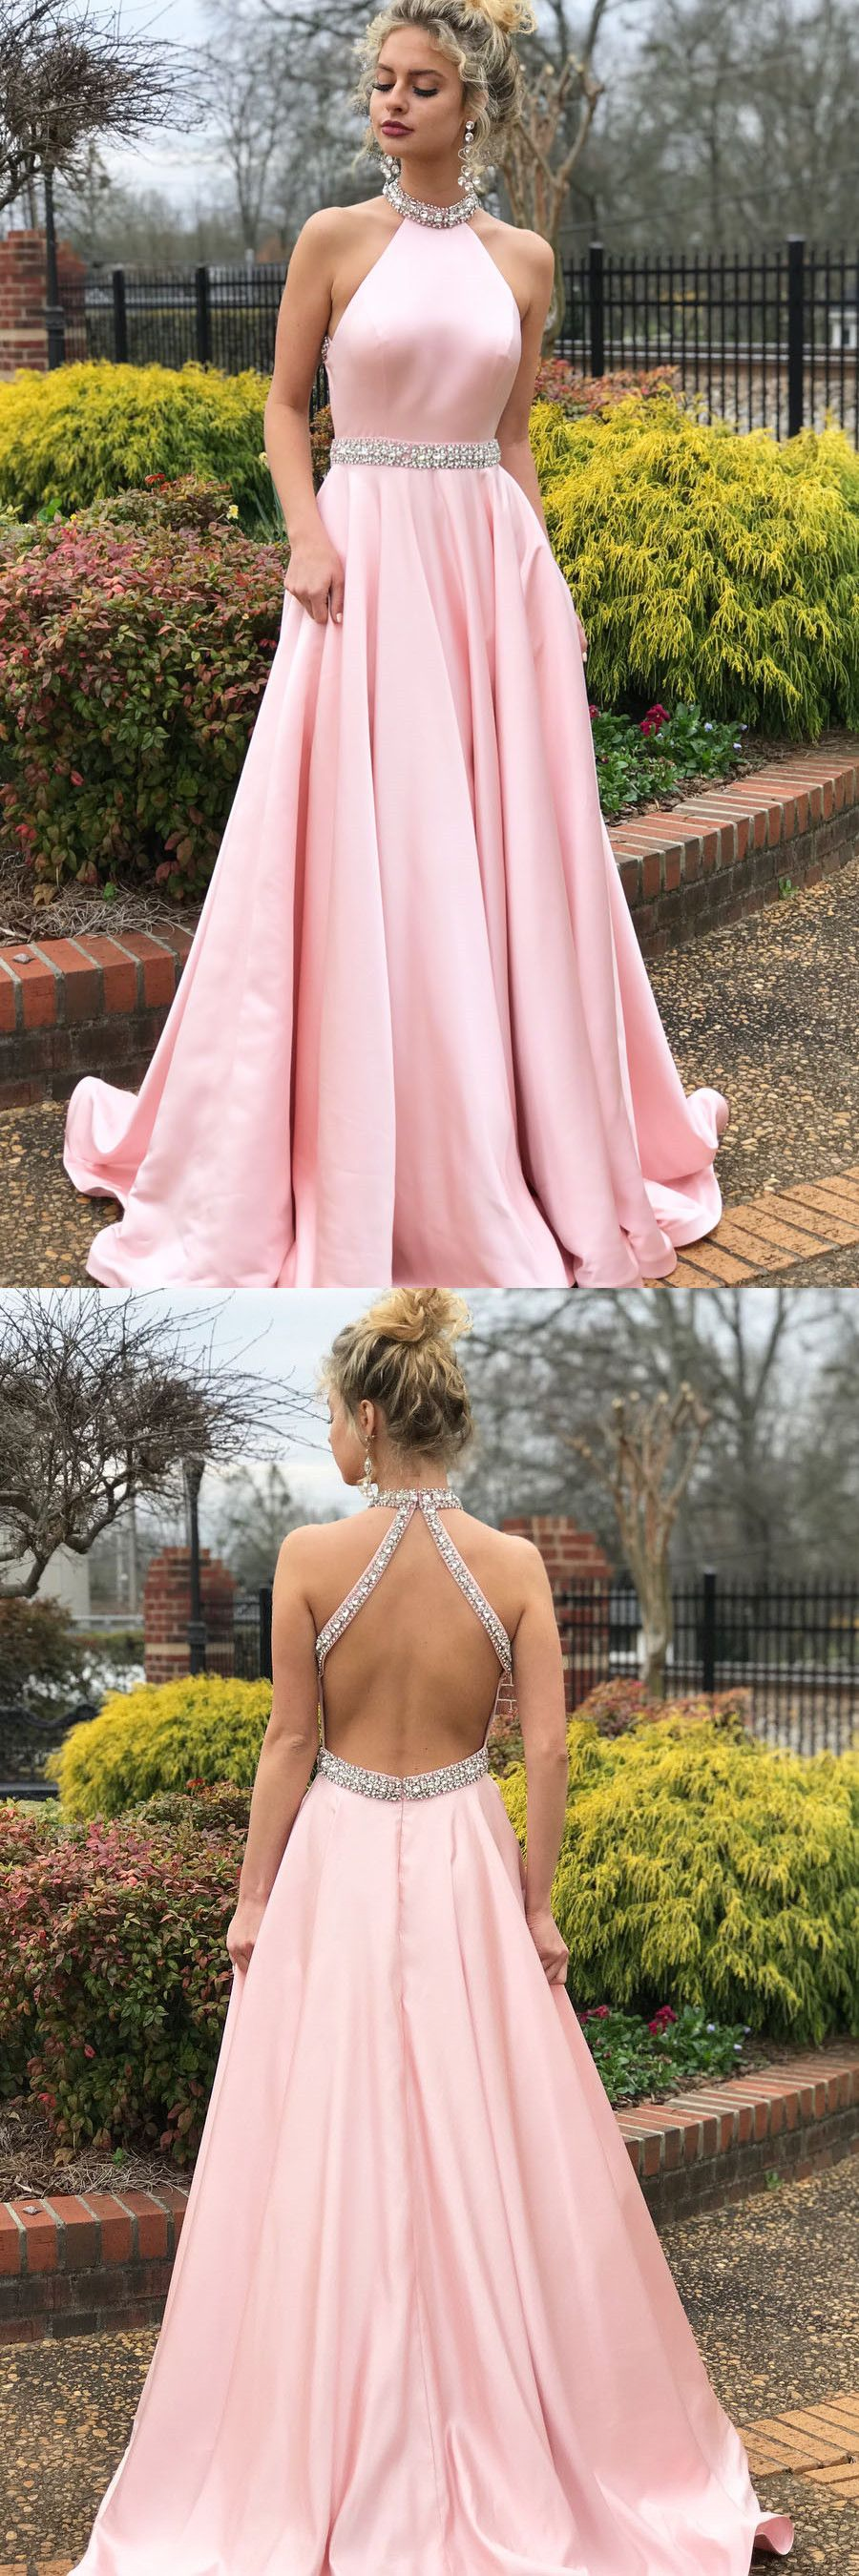 Charming High Neck Pink Beaded Long Prom Dress, Open Back Evening ...